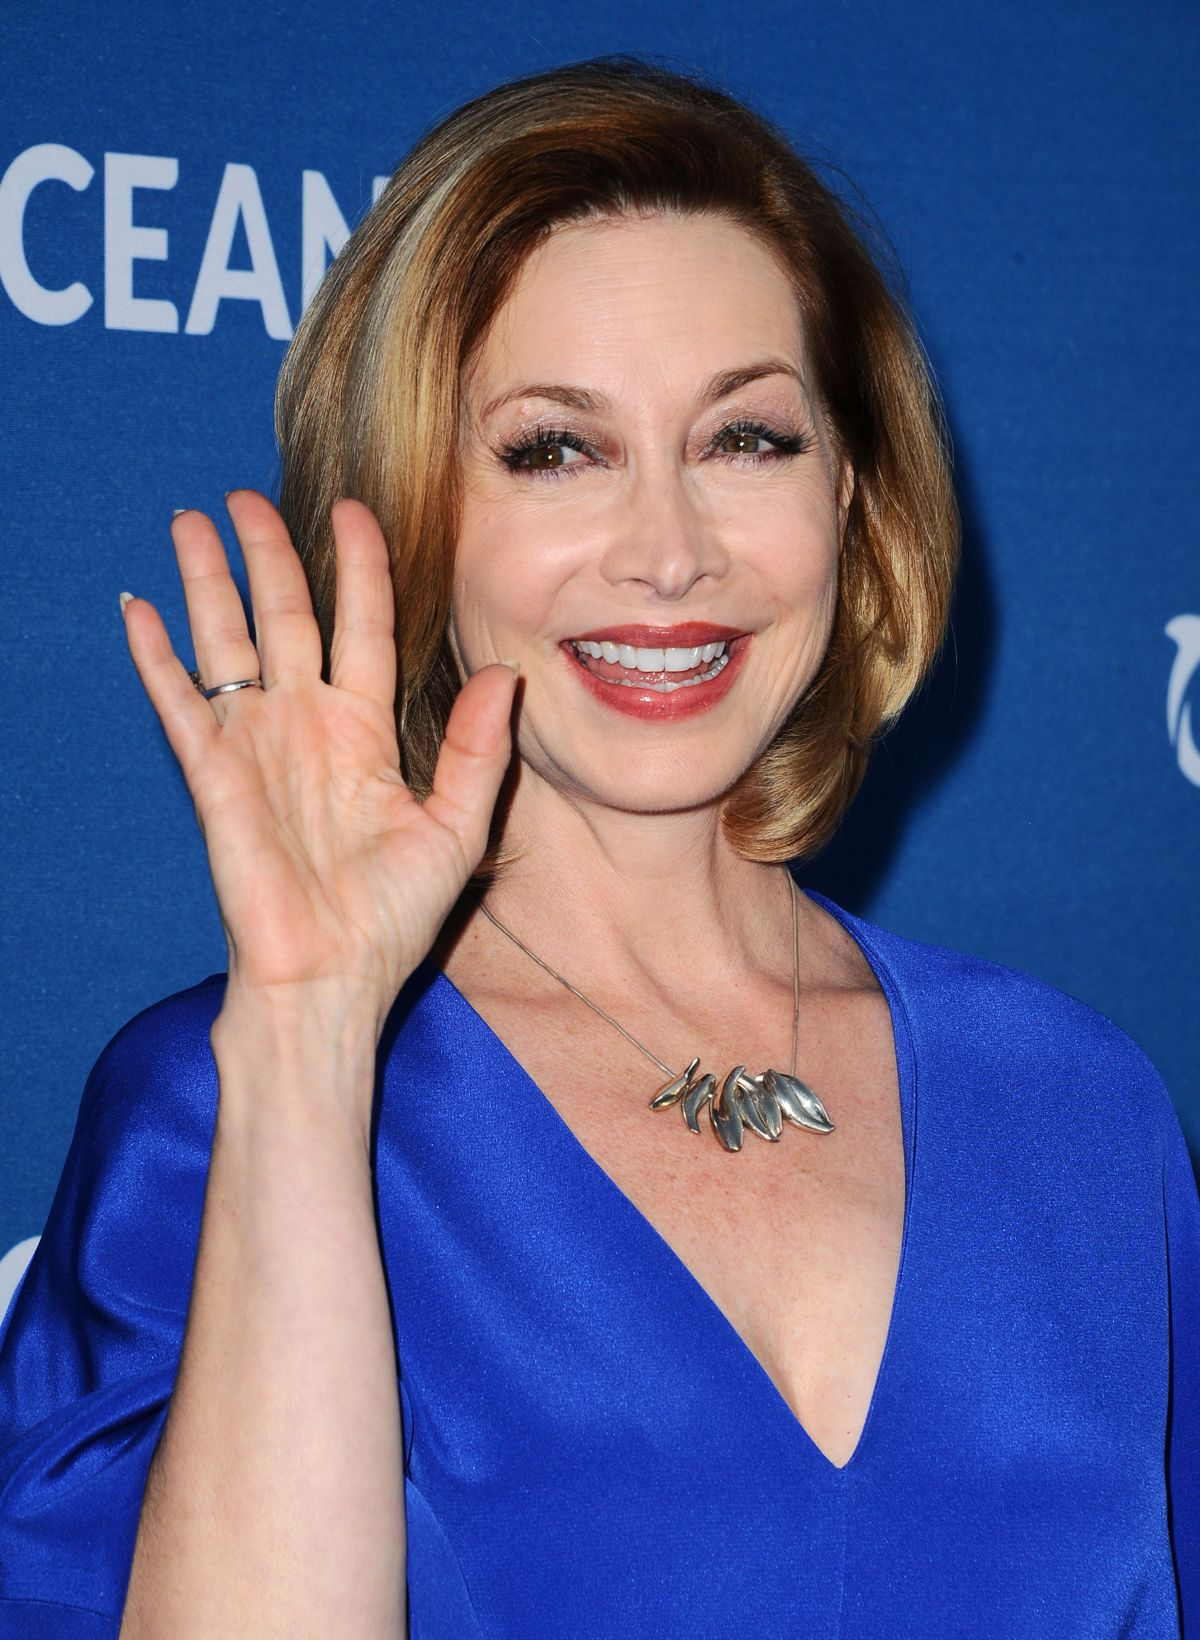 SHARON LAWRENCE at Oceana Concert for Our Oceans in Beverly Hills 09/28/2015